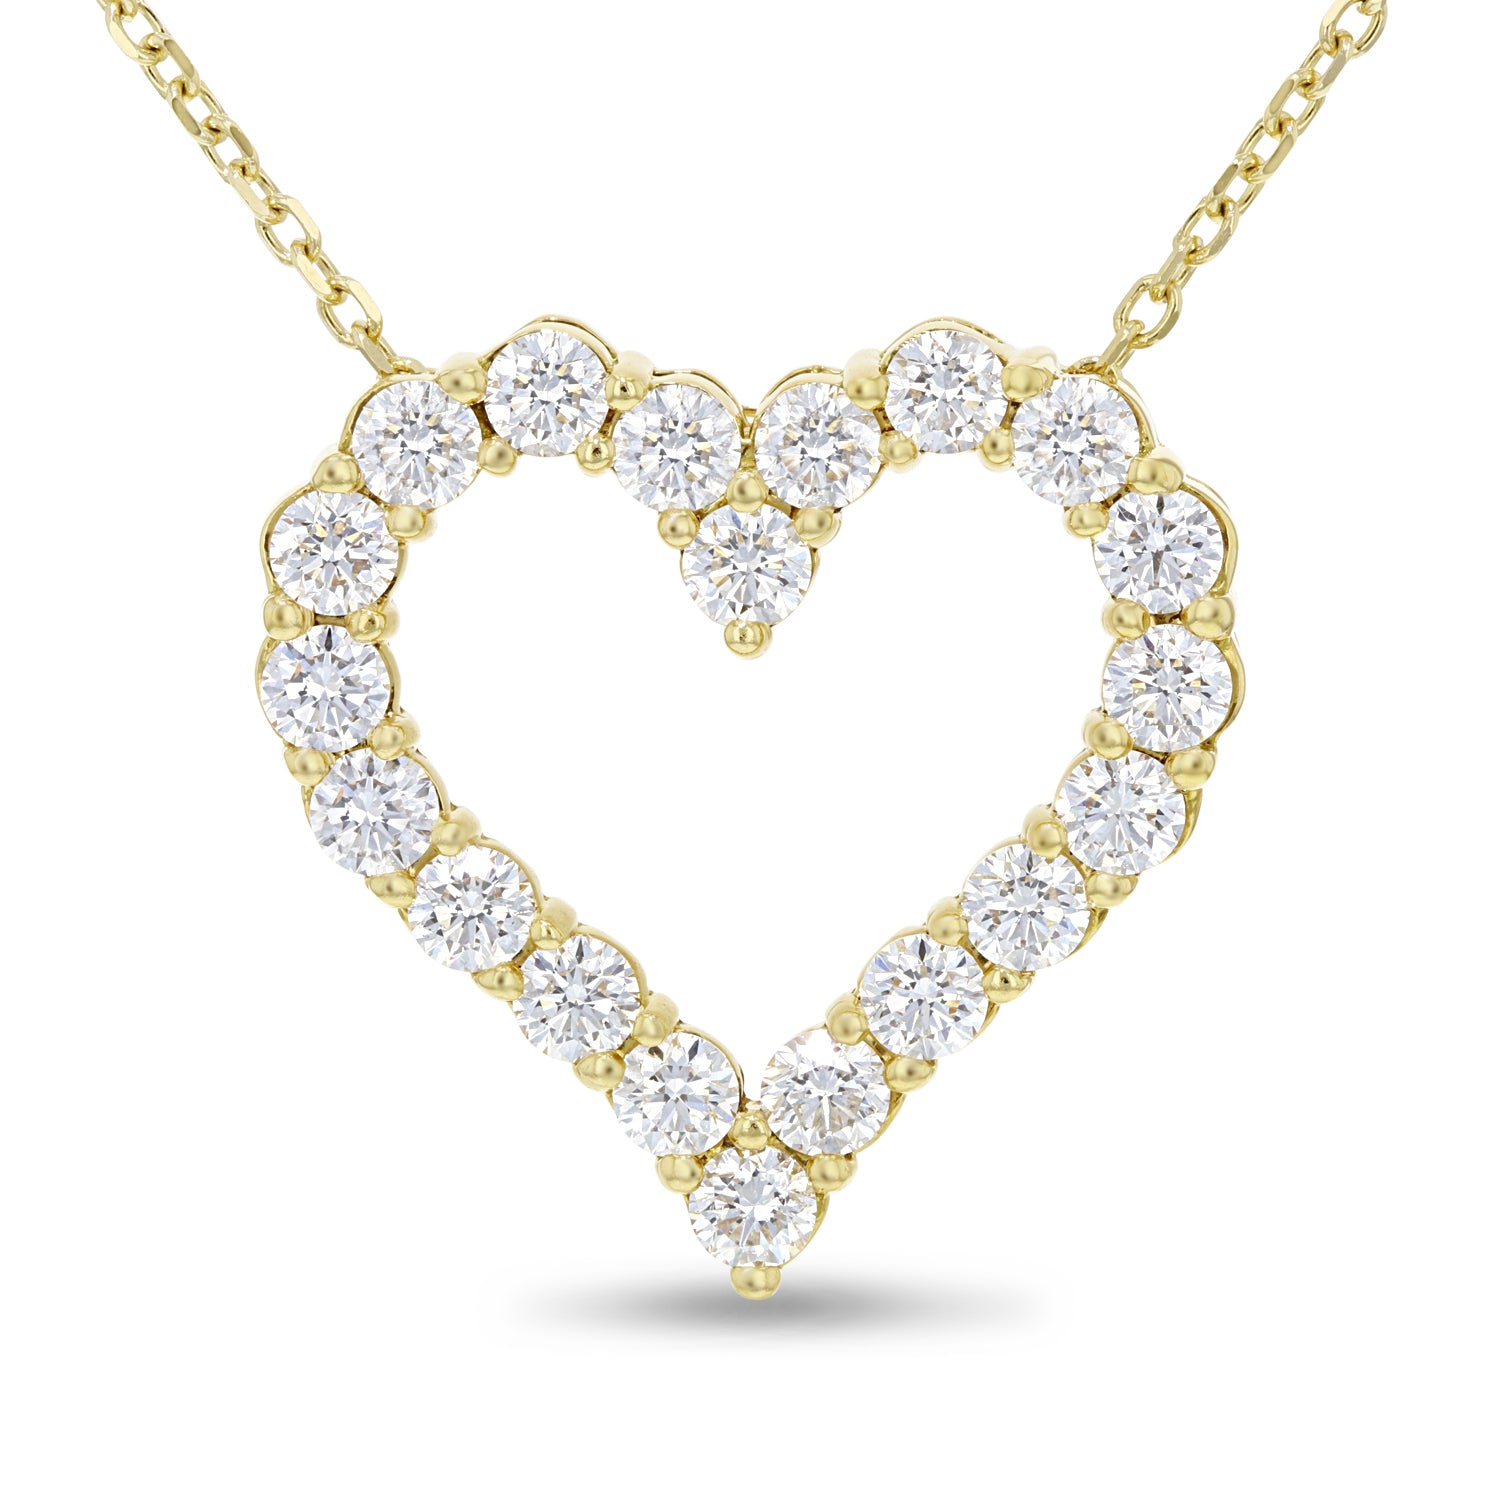 18K Yellow Gold Diamond Heart Pendant, 3.32 Carats